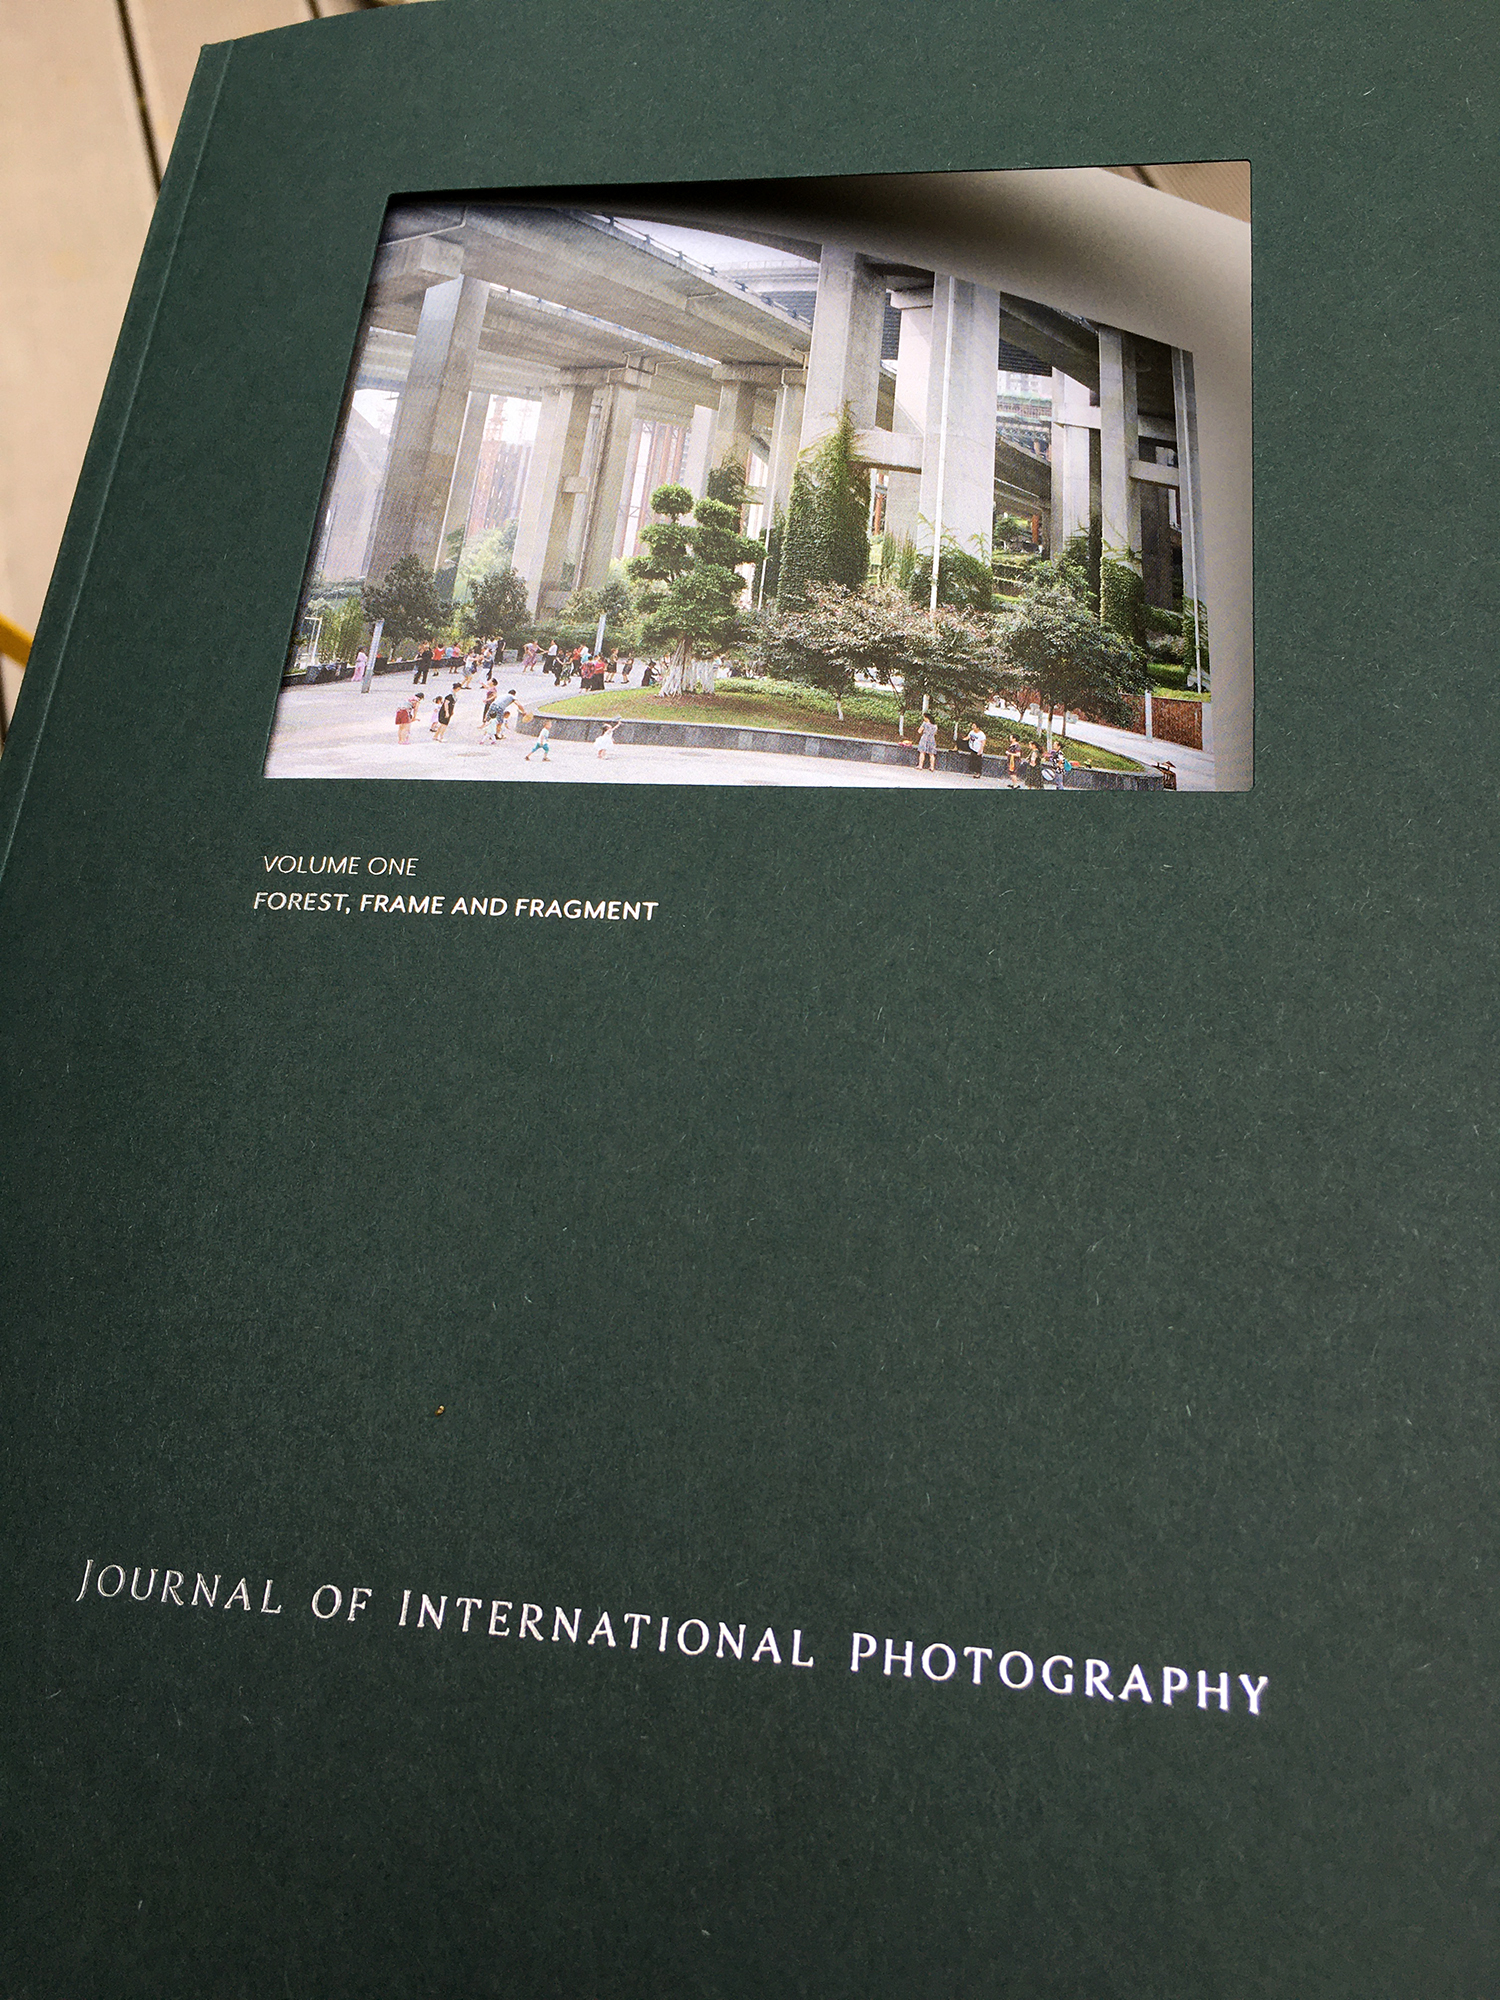 THE JOURNAL OF INTERNATIONAL PHOTOGRAPHY